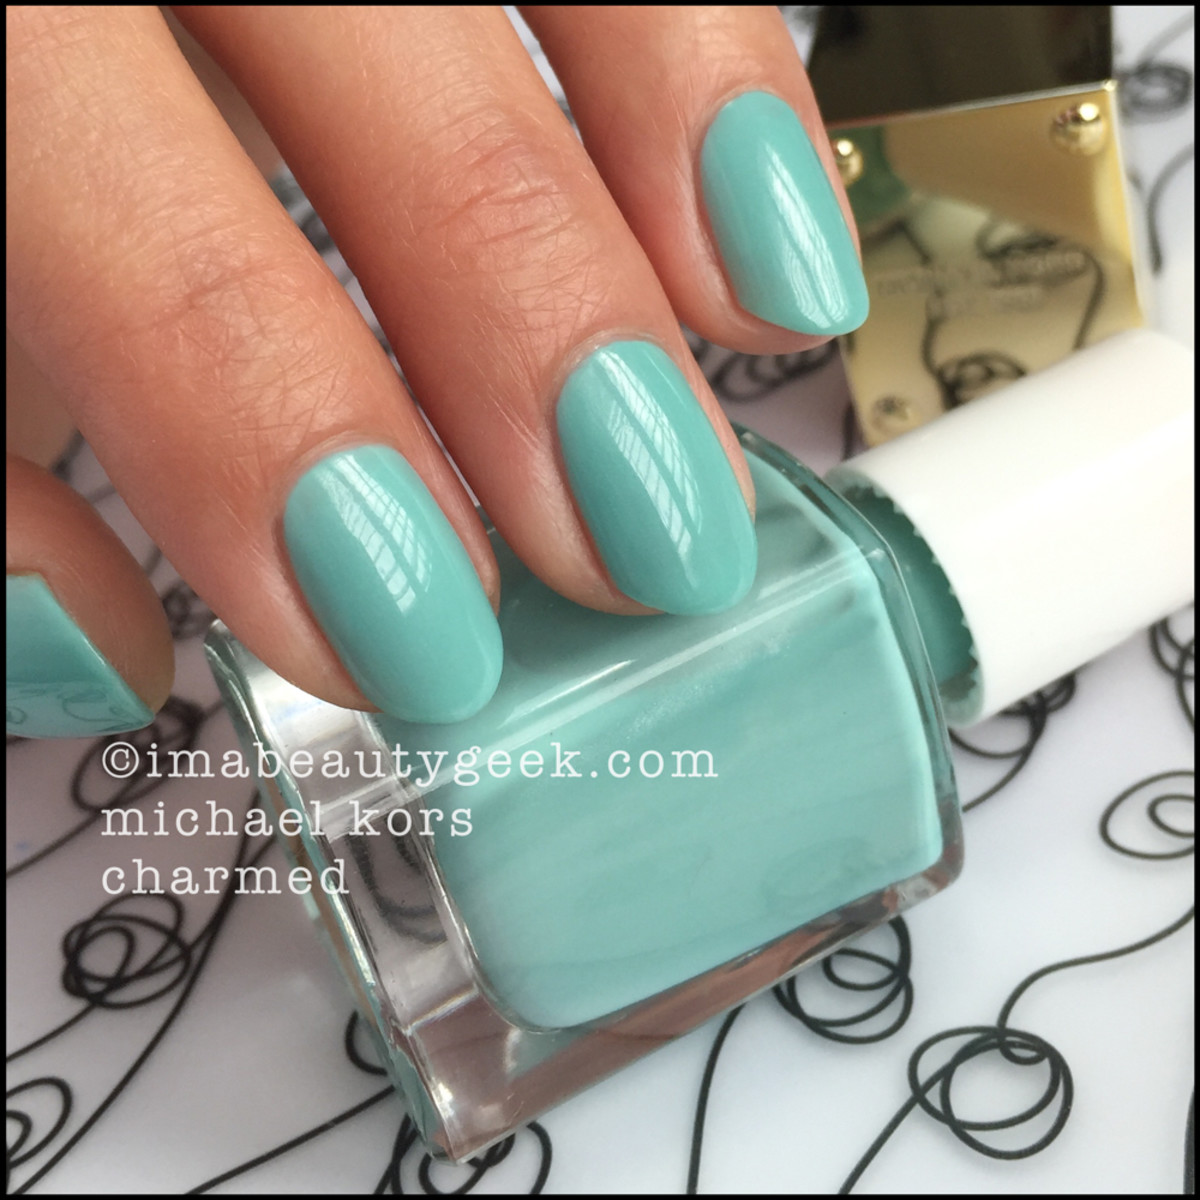 Michael Kors Nail Polish Charmed Swatch Beautygeeks